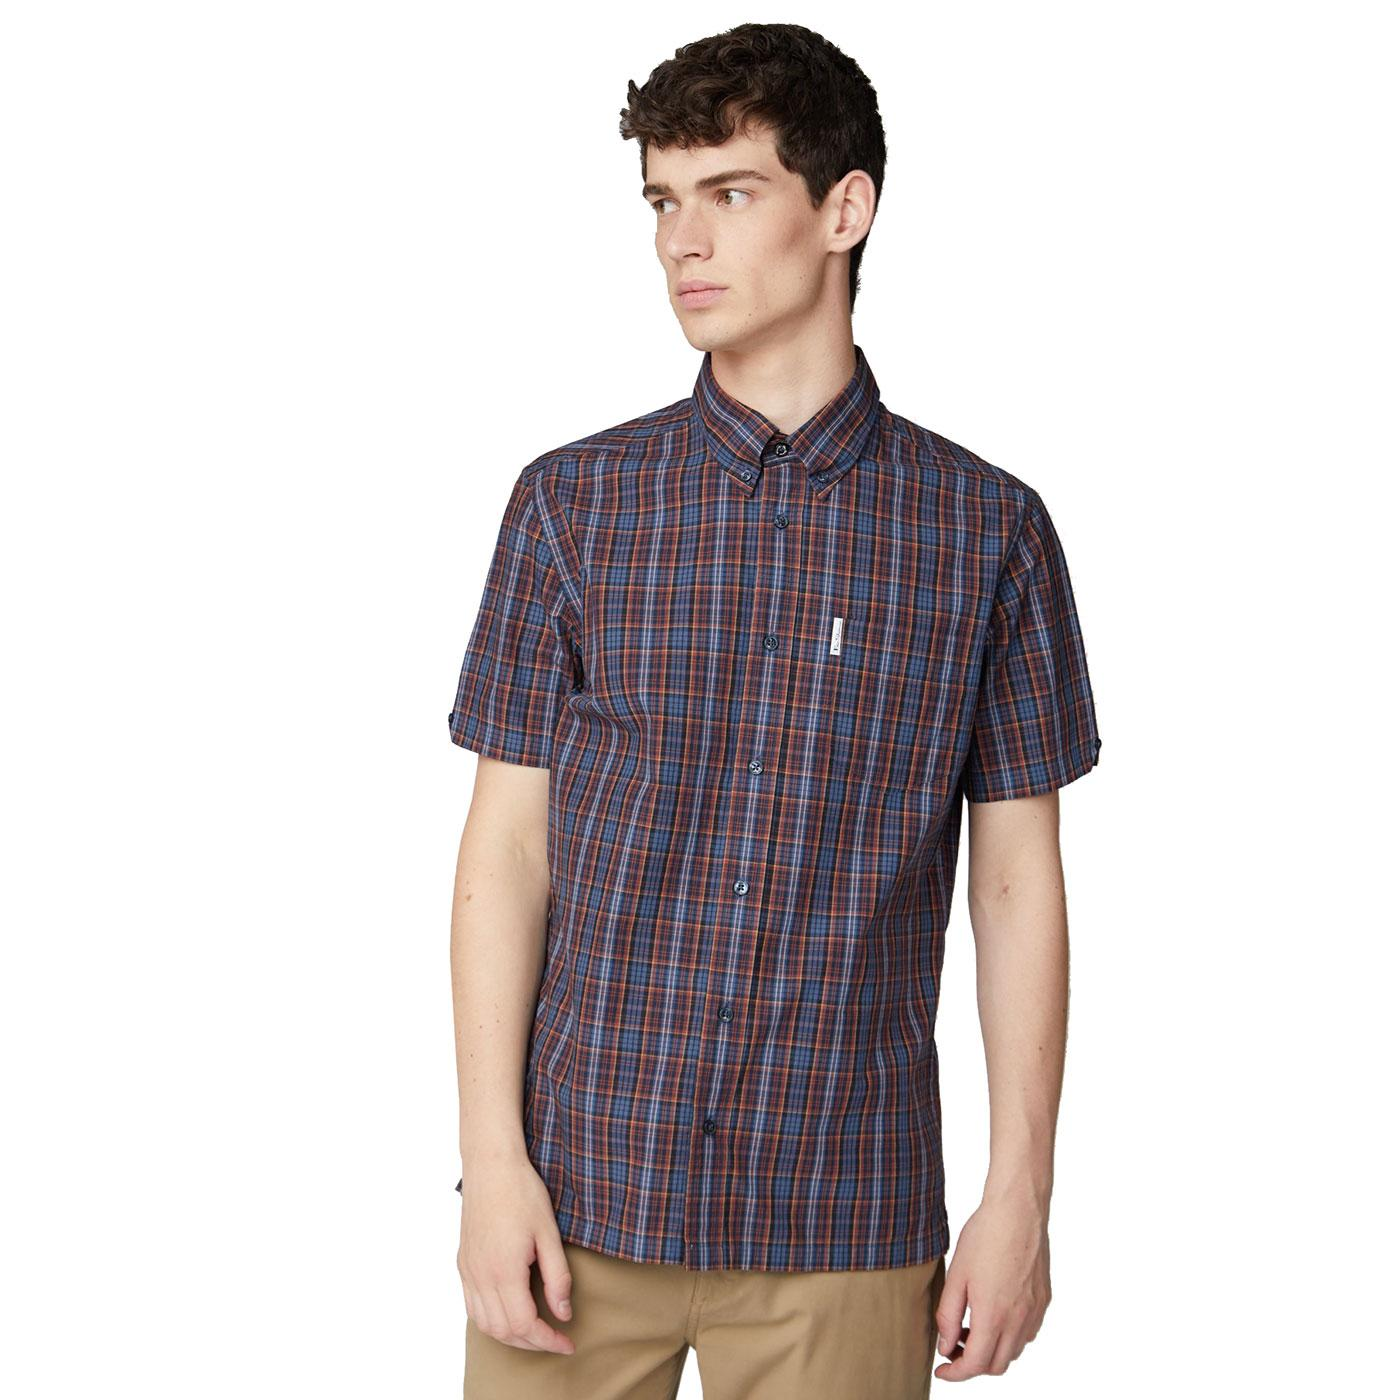 Carnaby BEN SHERMAN Retro 80's Archive Check Shirt